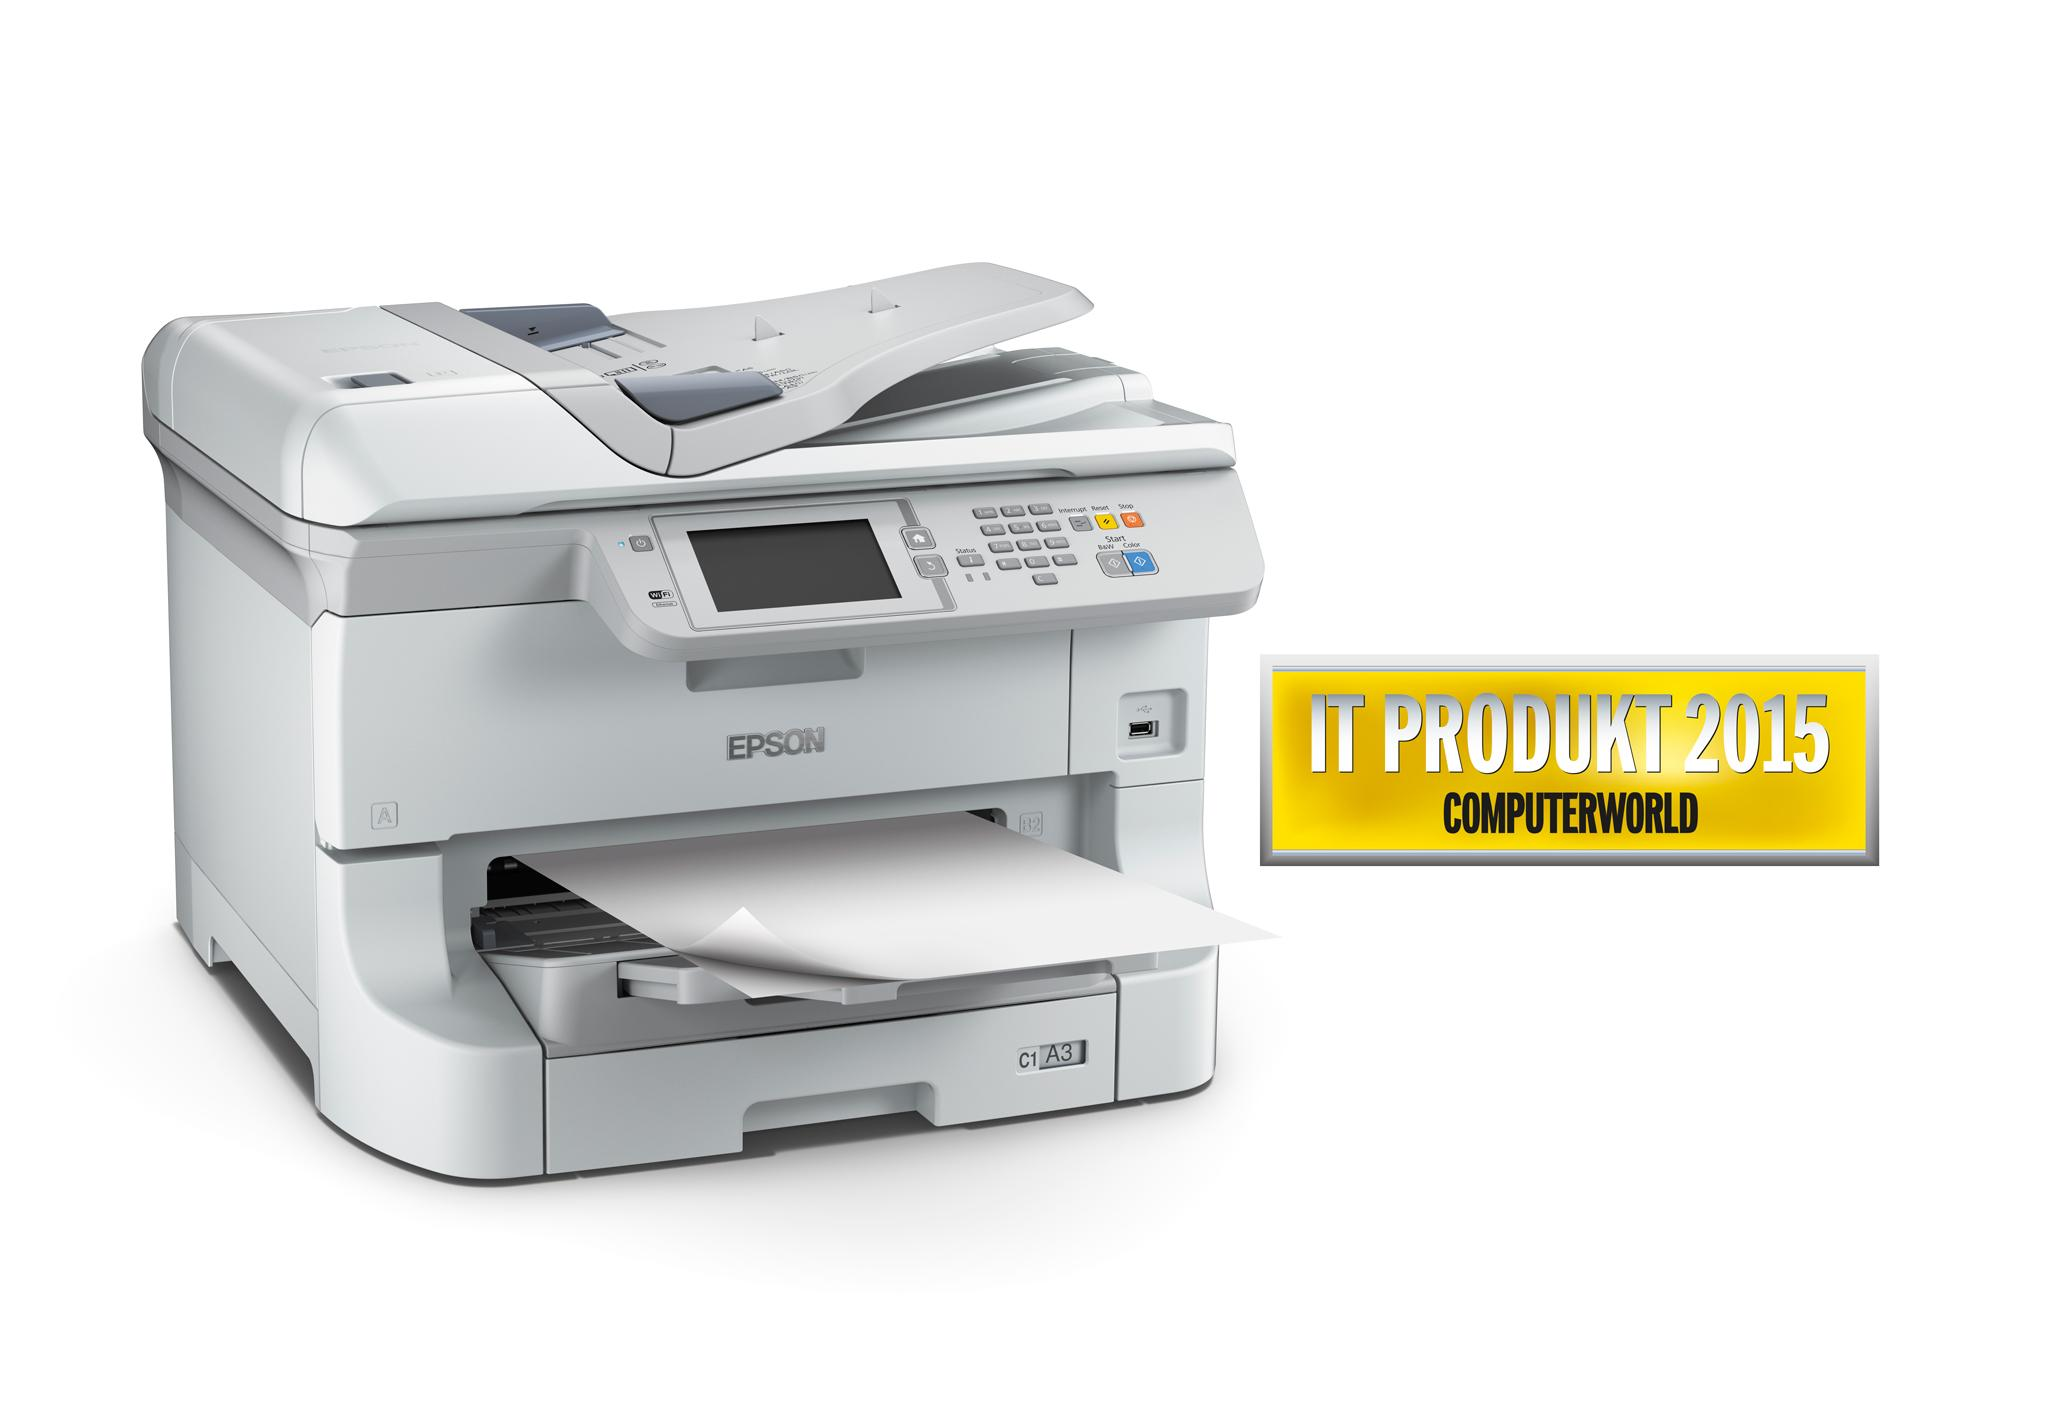 EPSON WorkForce Pro WF-8510DWF - A3+/34ppm/4ink/USB/LAN/WiFi/Duplex/ADF/Fax